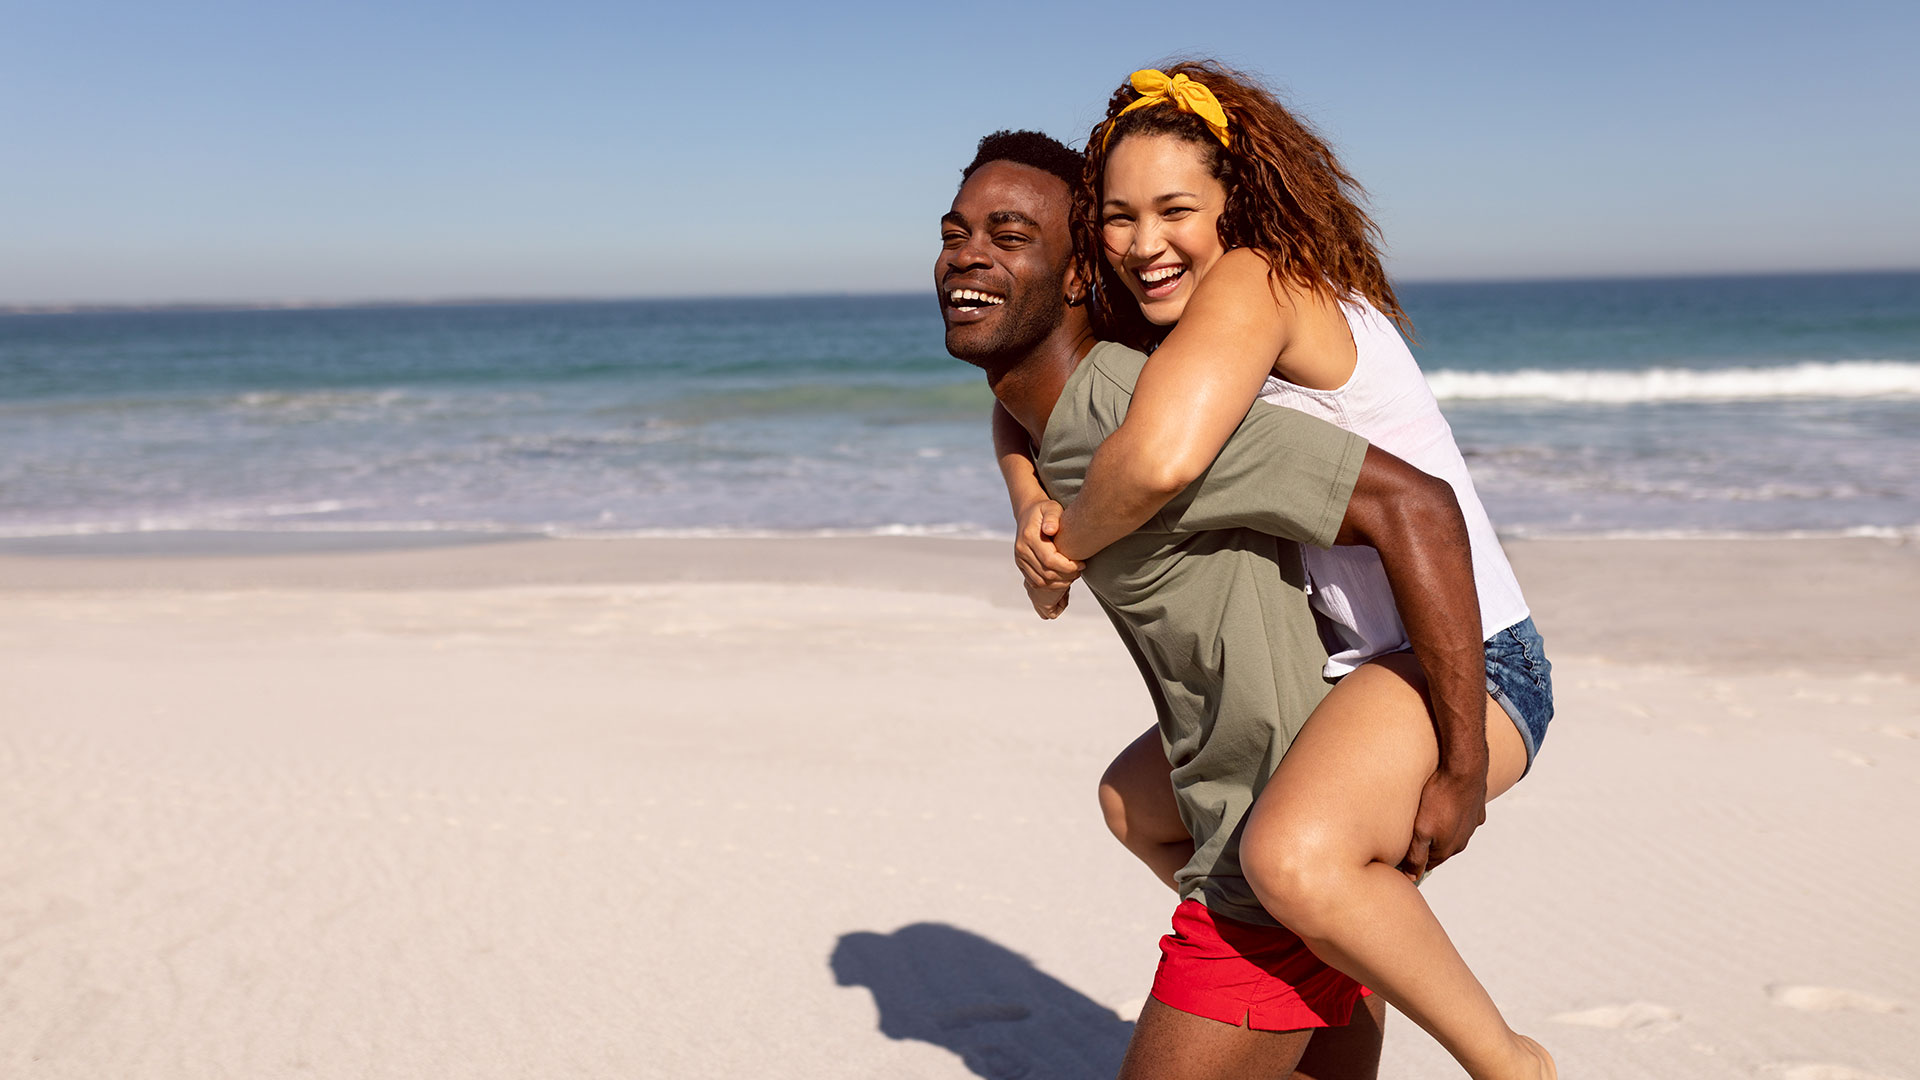 Man giving piggyback ride to woman on a beach in the sunshine.